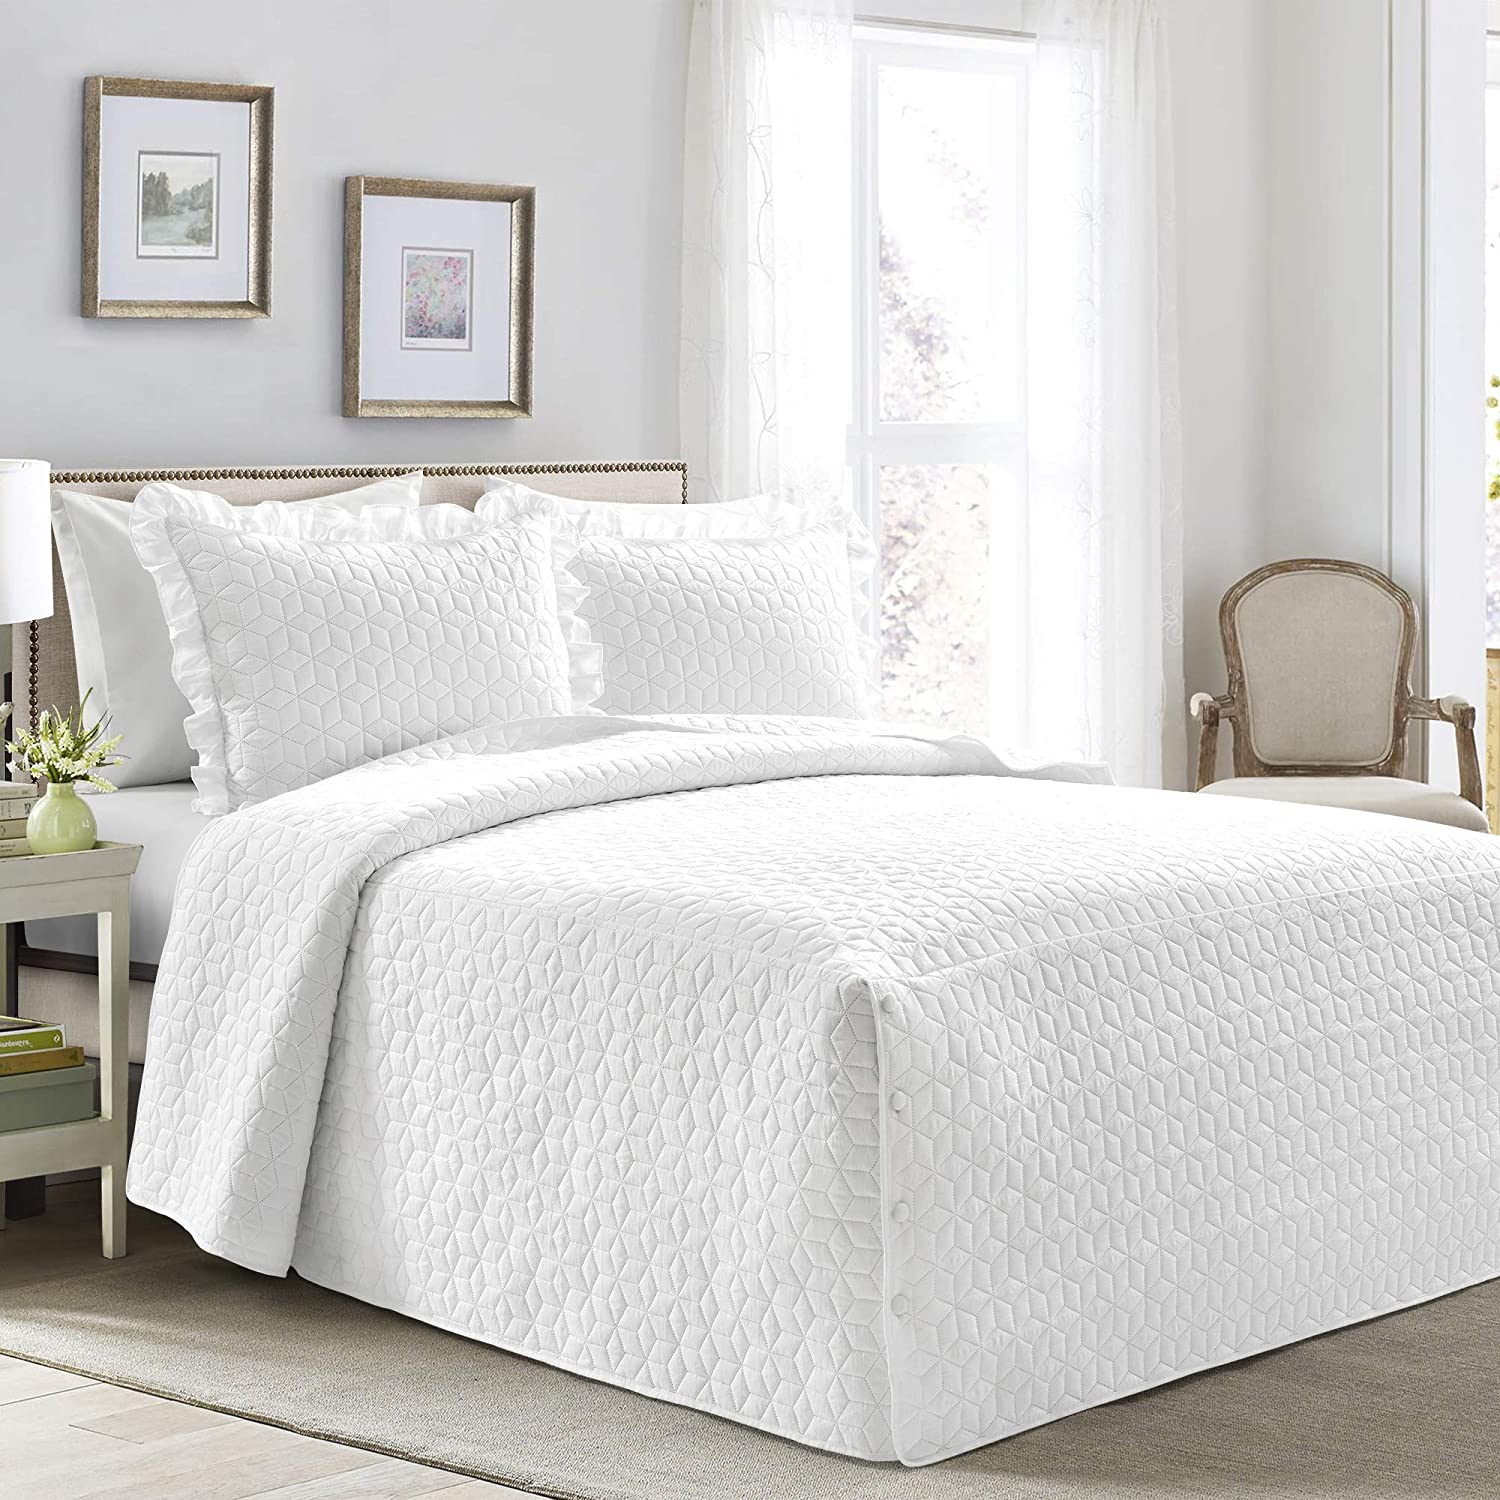 Lush Decor French Country Geo Ruffle Bedding, 3-Piece Bedspread Set (Queen, White)